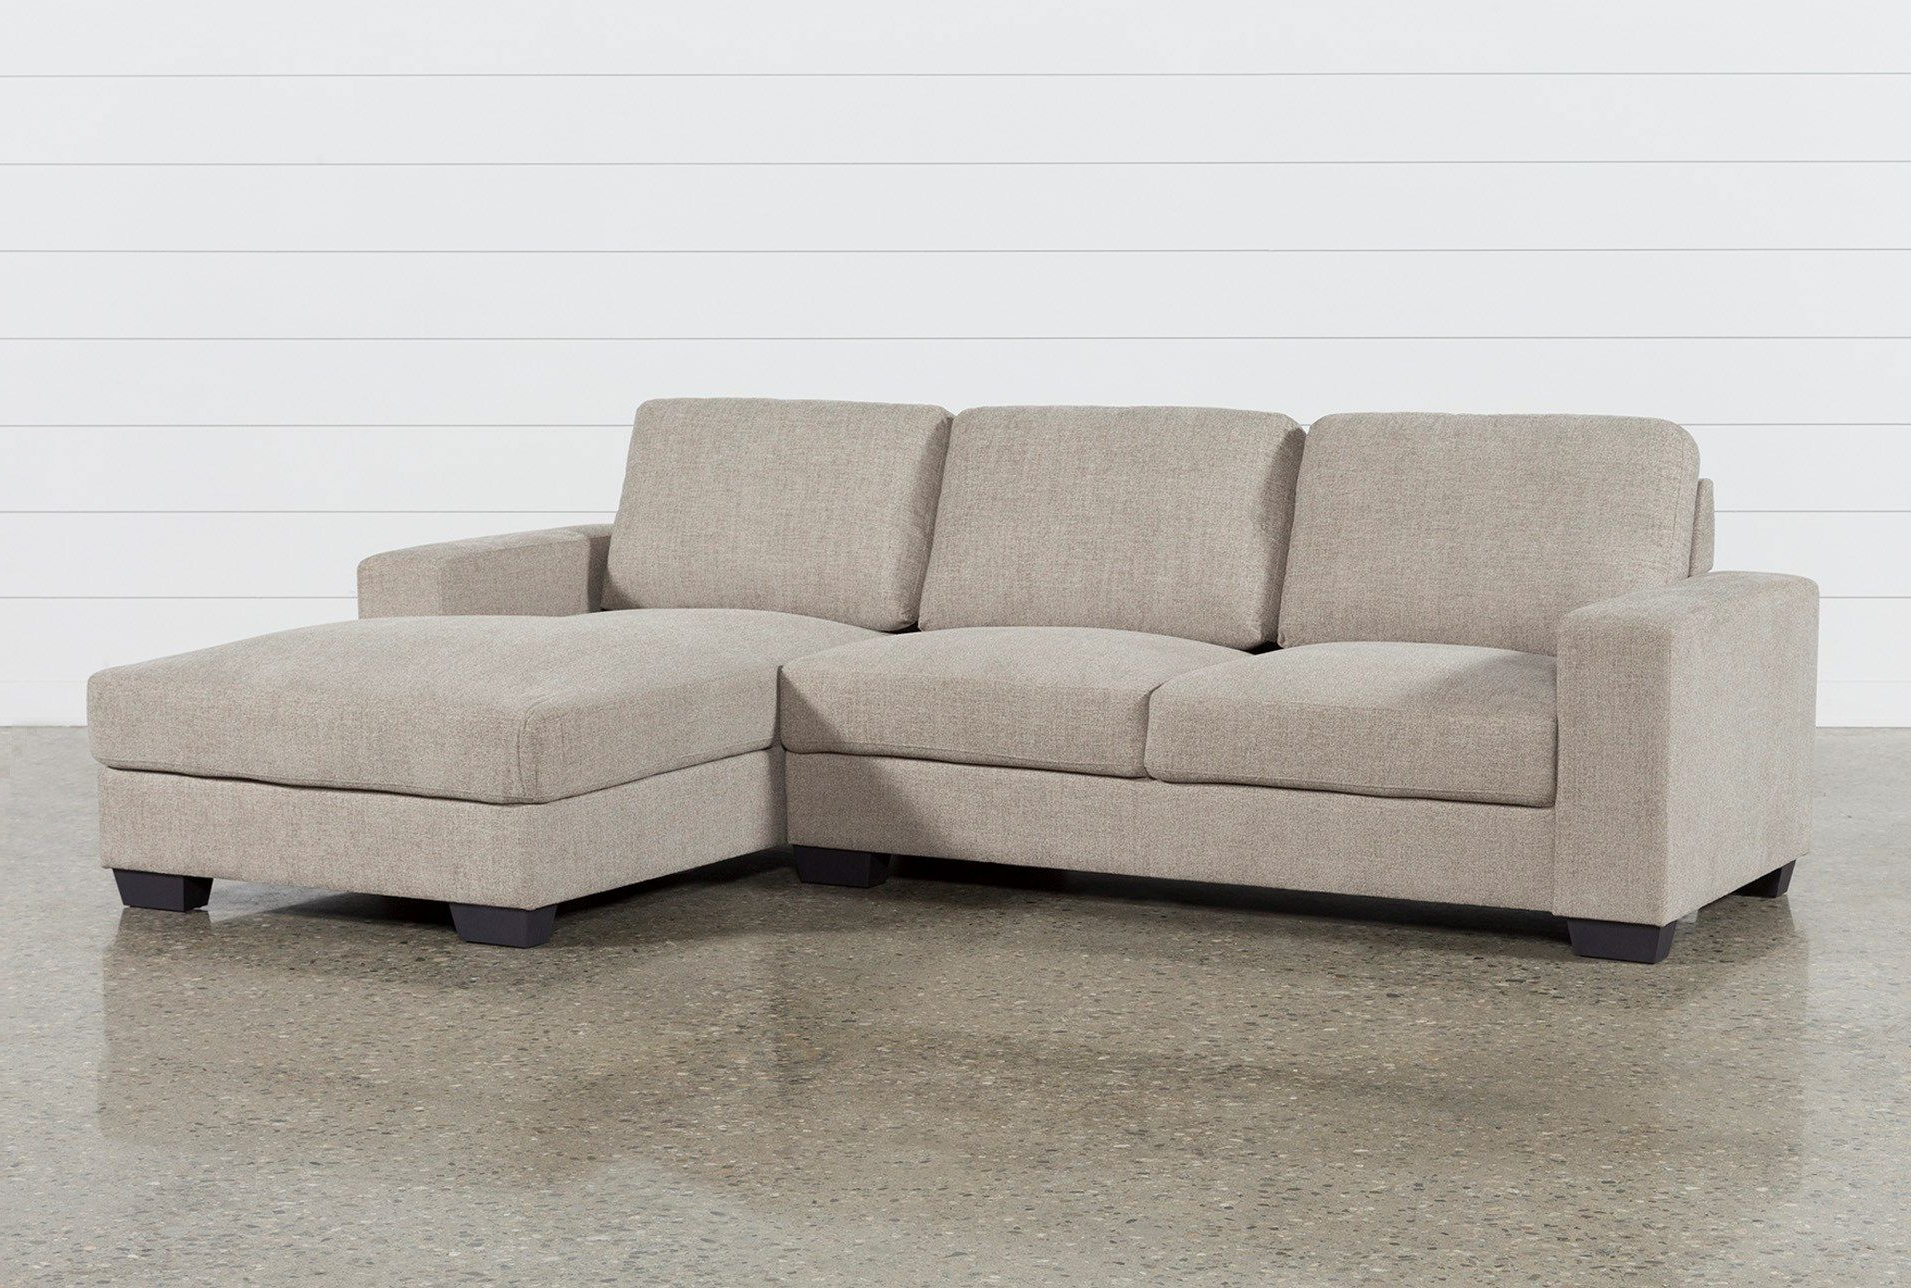 Well Liked Jobs Oat 2 Piece Sectional With Right Facing Chaise In 2018 Inside Arrowmask 2 Piece Sectionals With Sleeper & Left Facing Chaise (View 3 of 20)